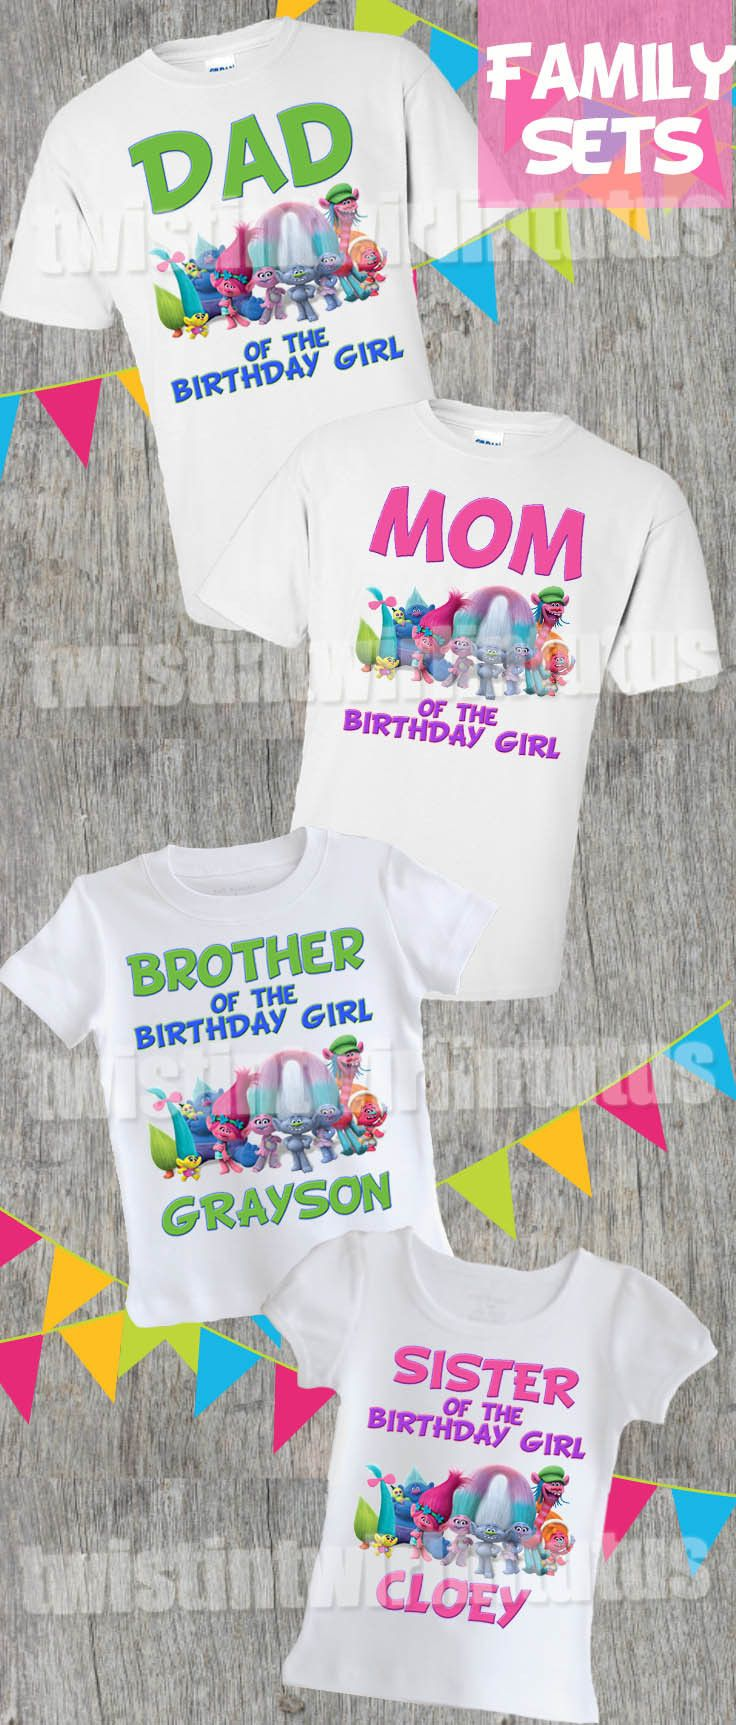 Funny family vacation t shirt ideas 1000 ideas about family vacation - Trolls Birthday Party Ideas Trolls Birthday Shirt Trolls Family Shirt Set Twistin Twirlin